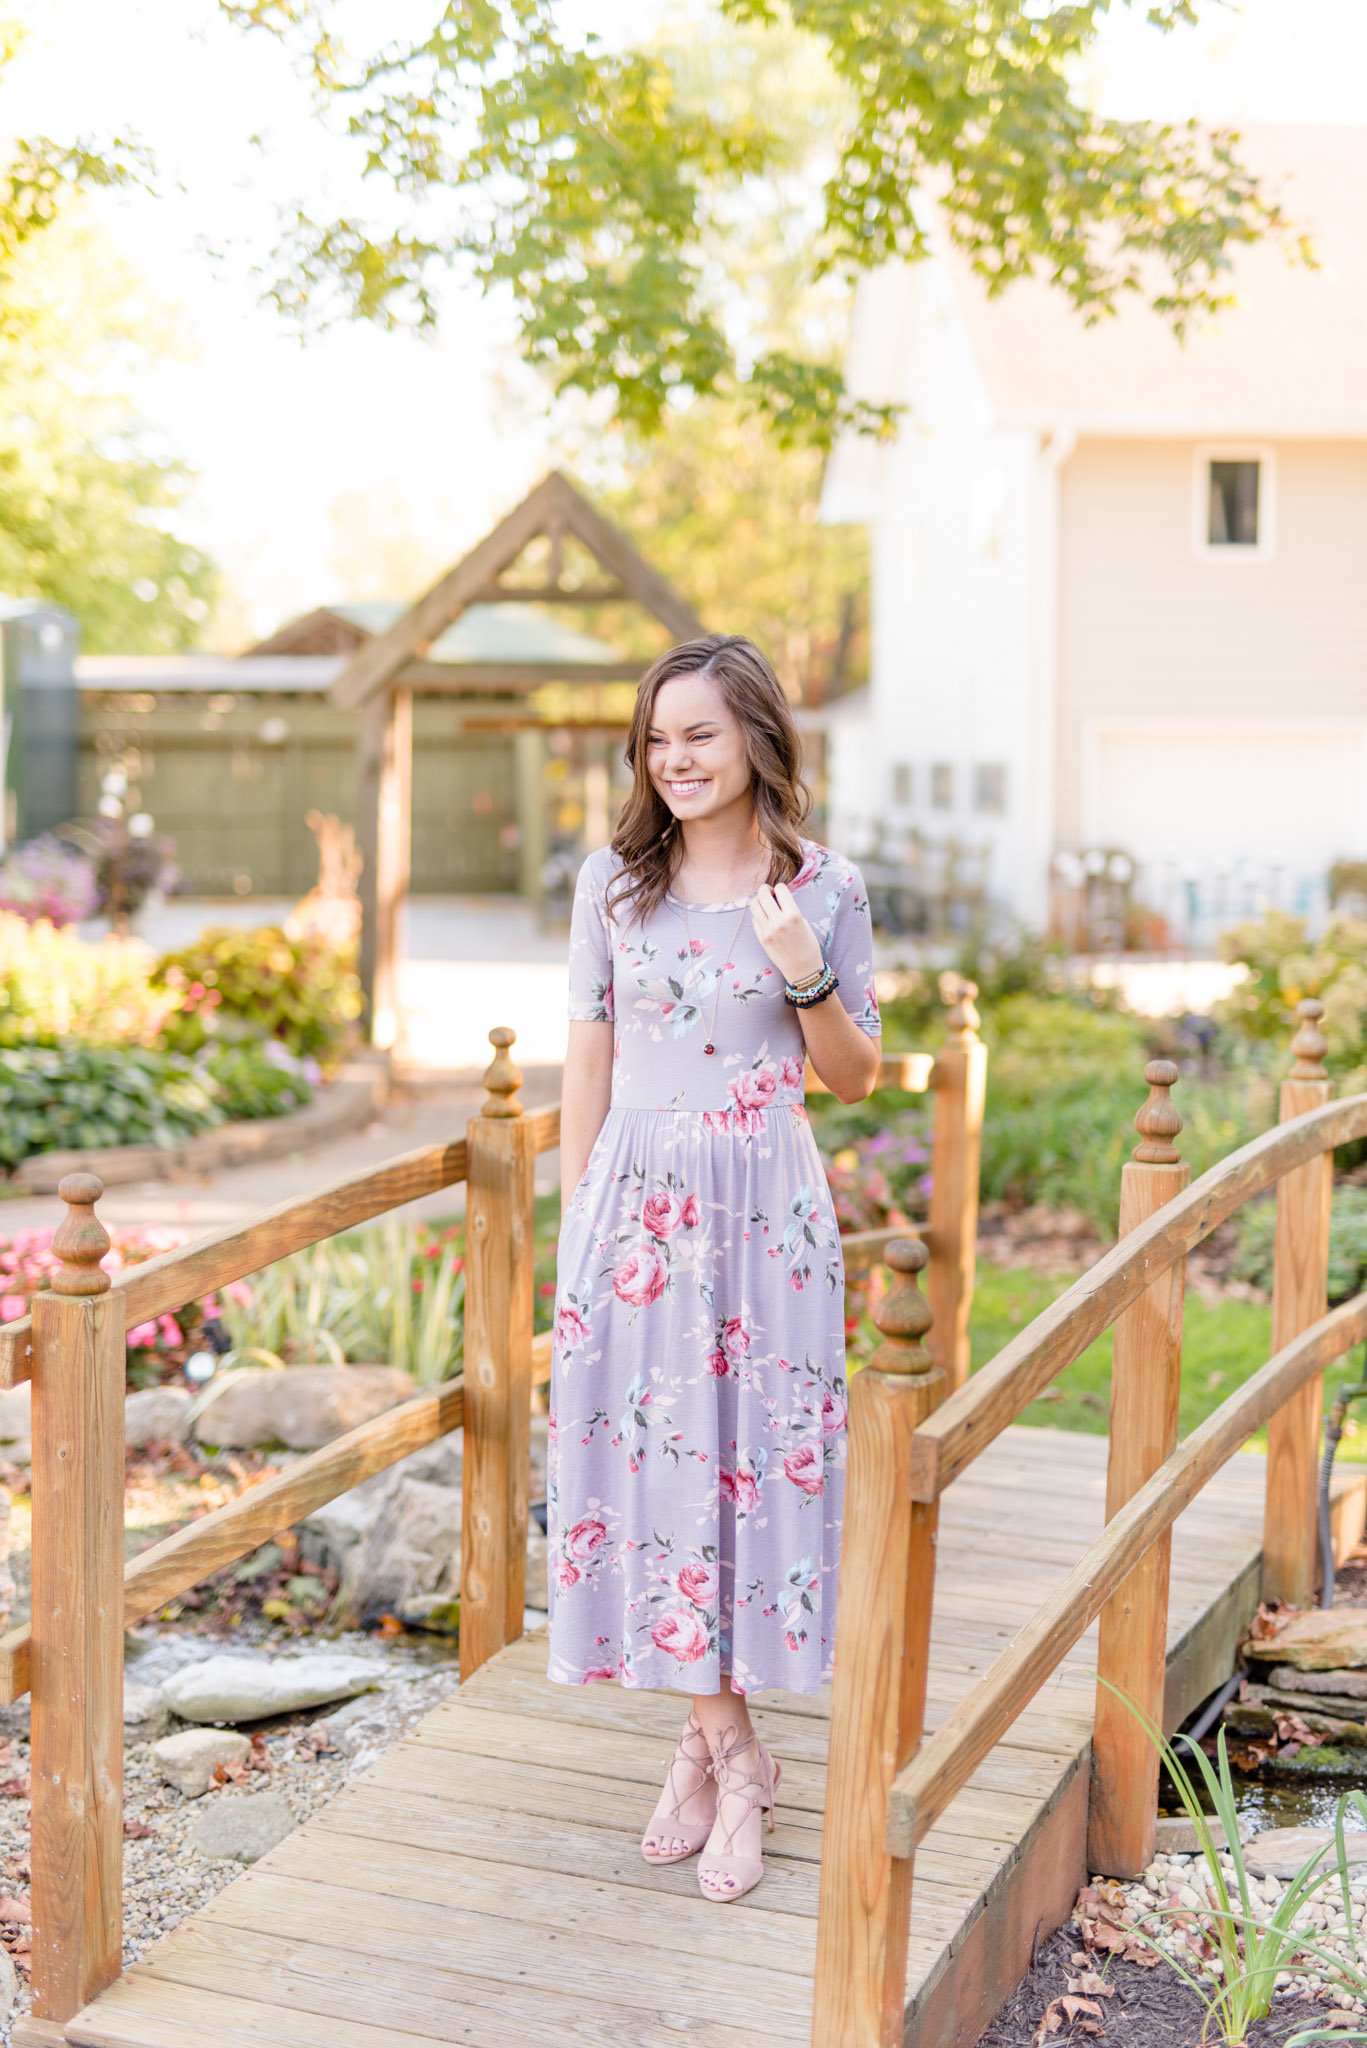 senior stands on bridge in floral dress